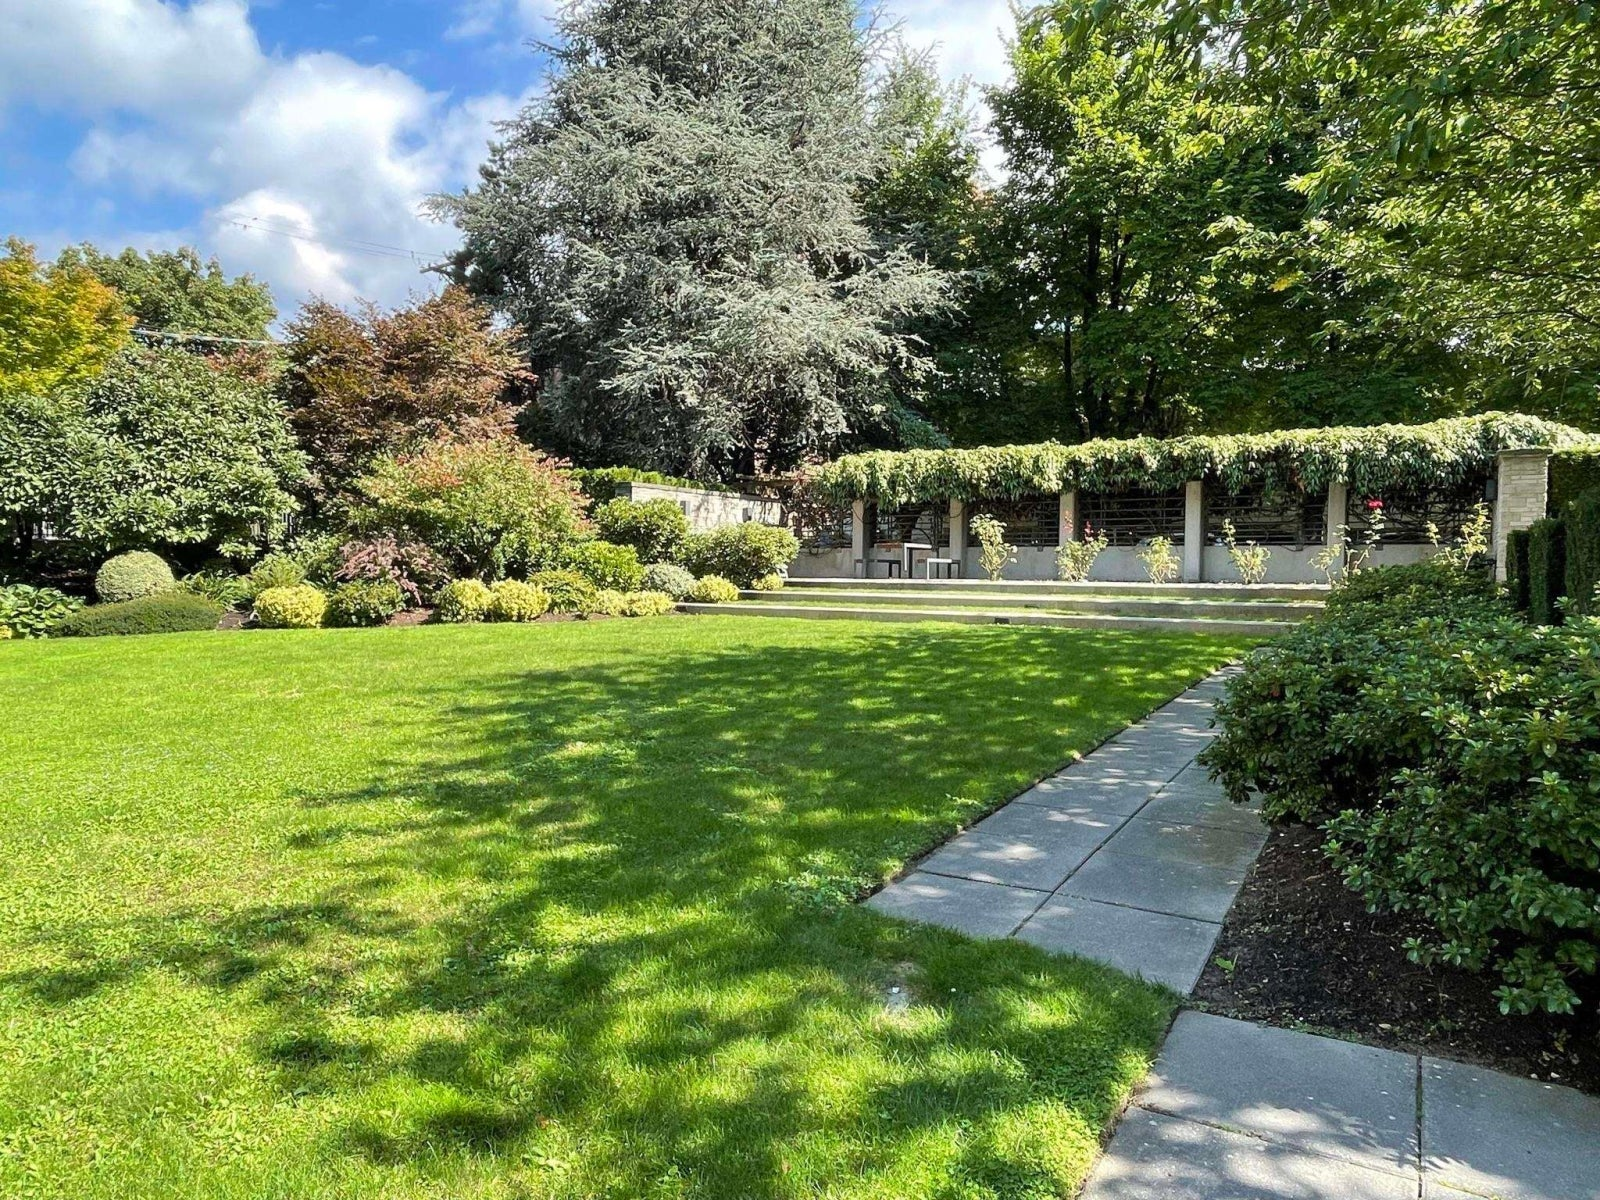 803 1333 W 11TH AVENUE - Fairview VW Apartment/Condo for sale, 2 Bedrooms (R2616288) #33